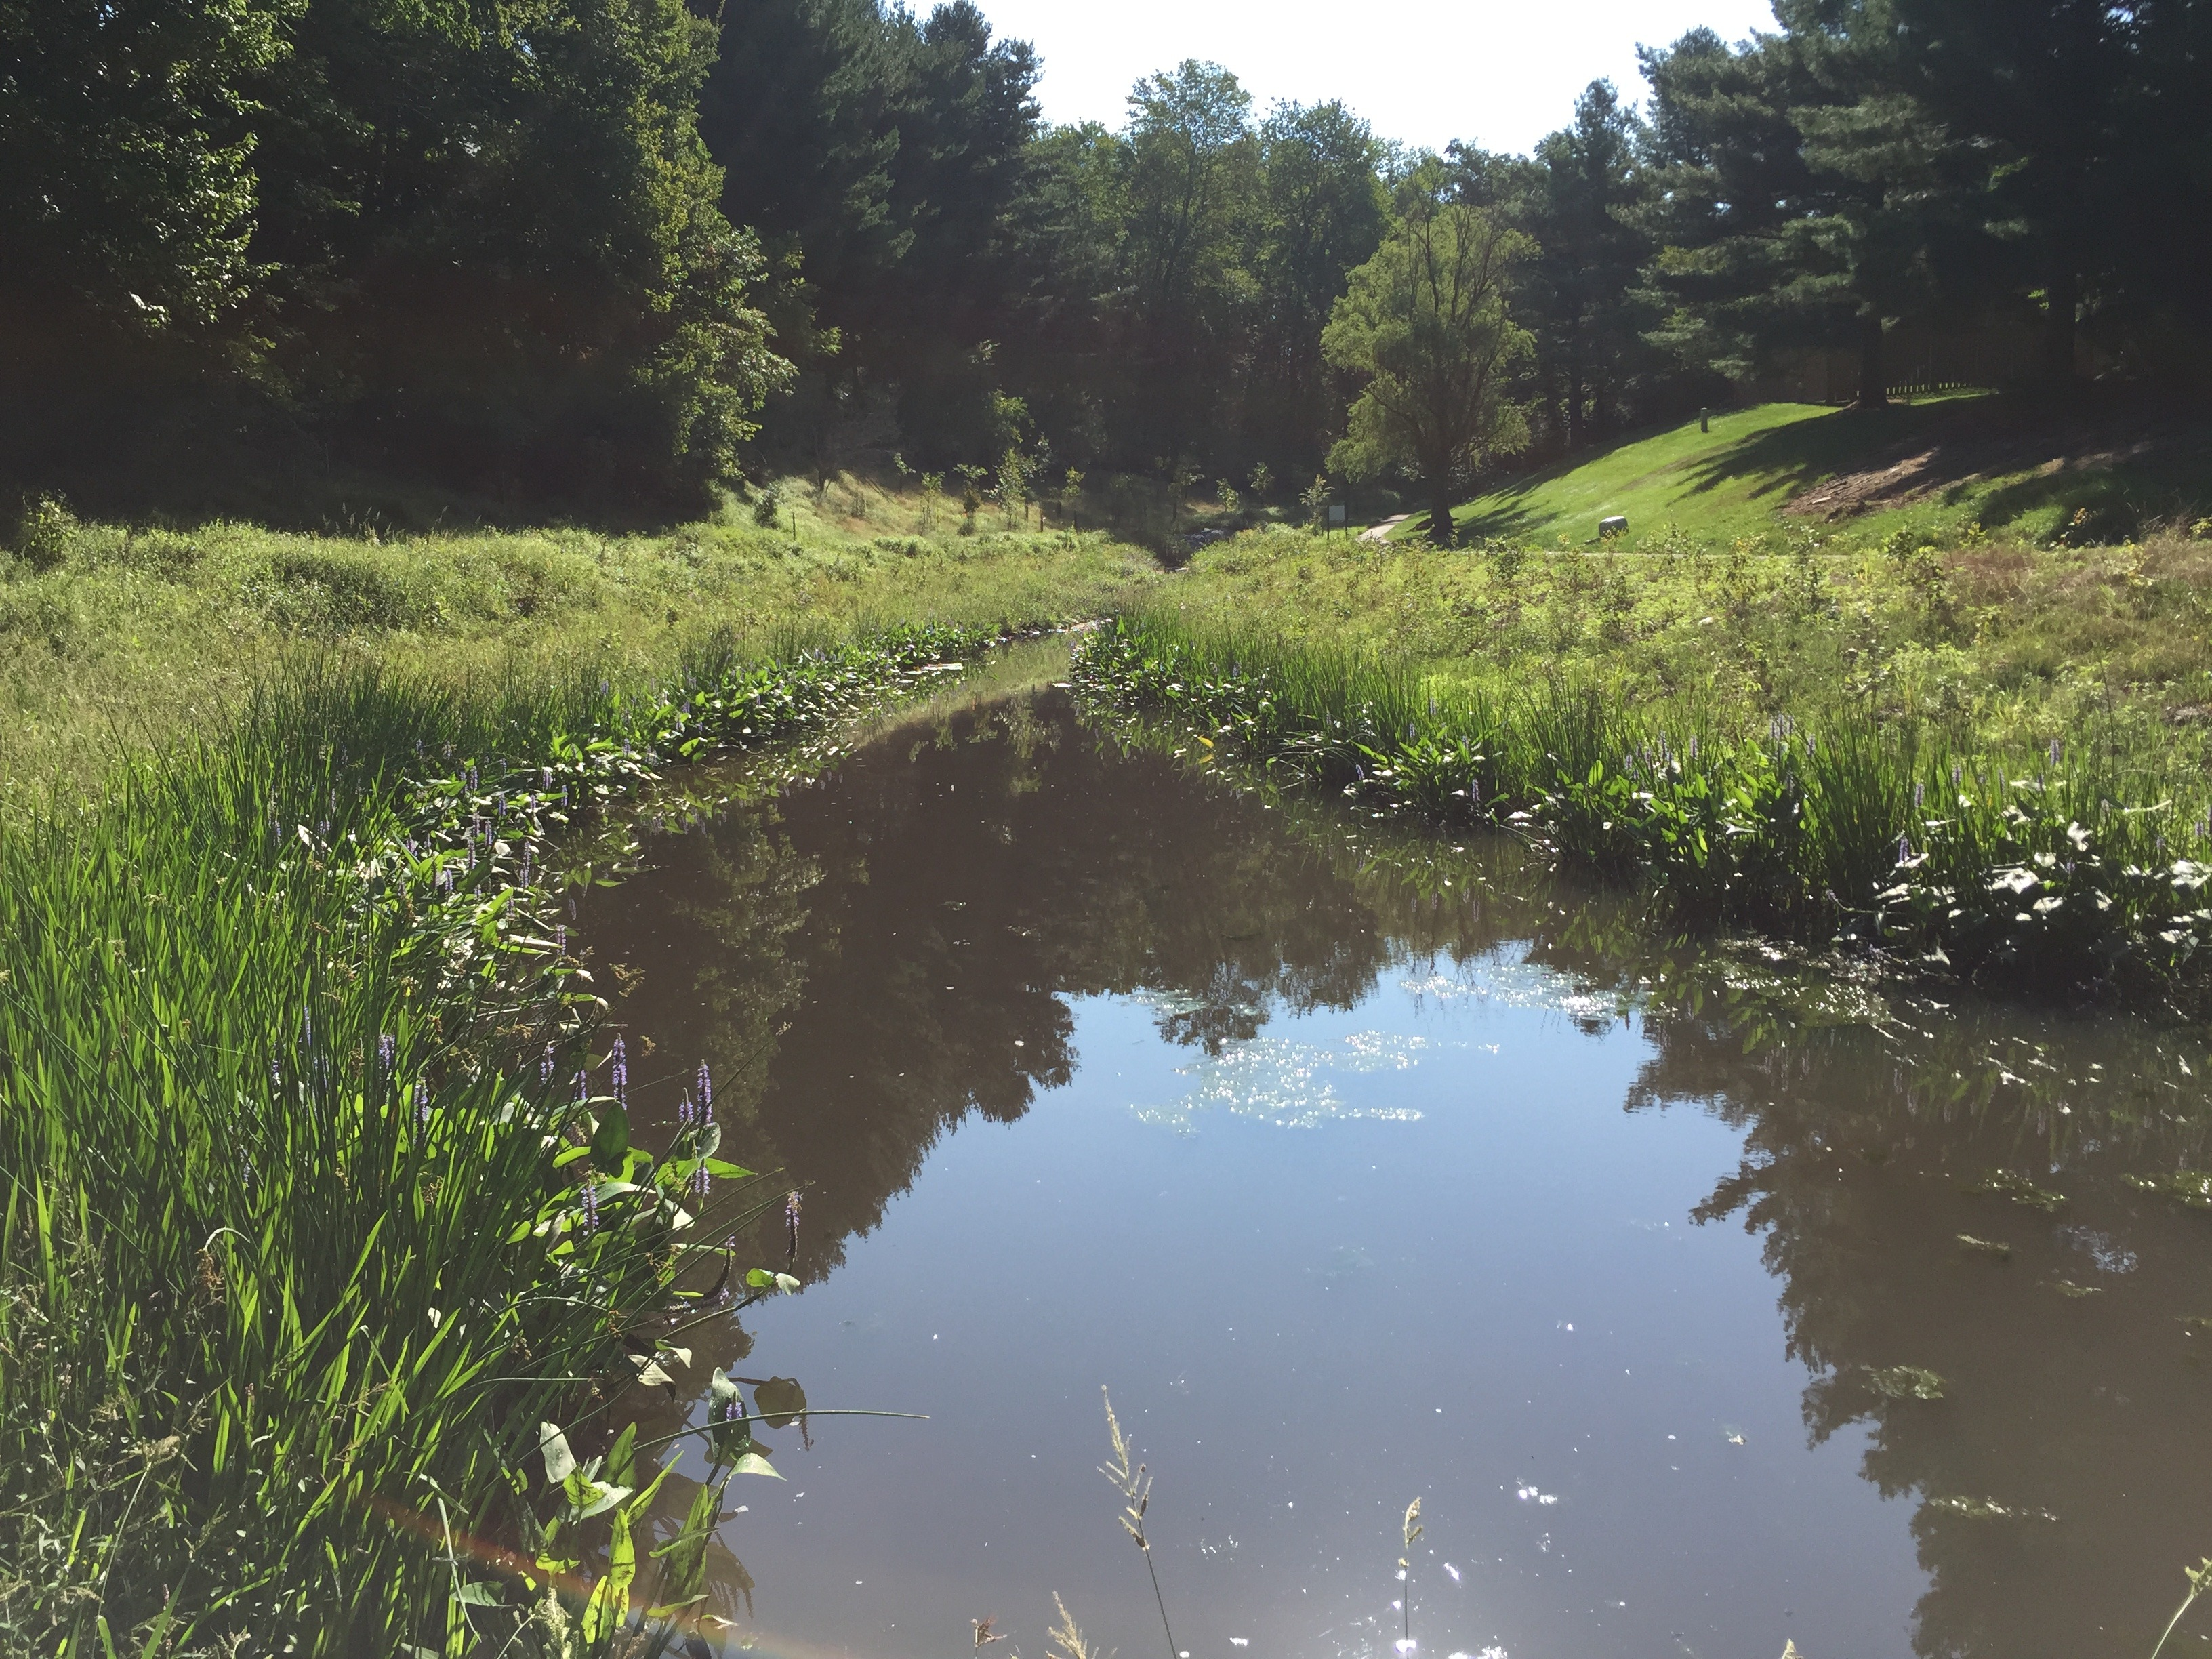 Ponds department of environmental protection montgomery county md - Image Of Fallsberry Pond 11 Months After Conversion To A Wet Pond